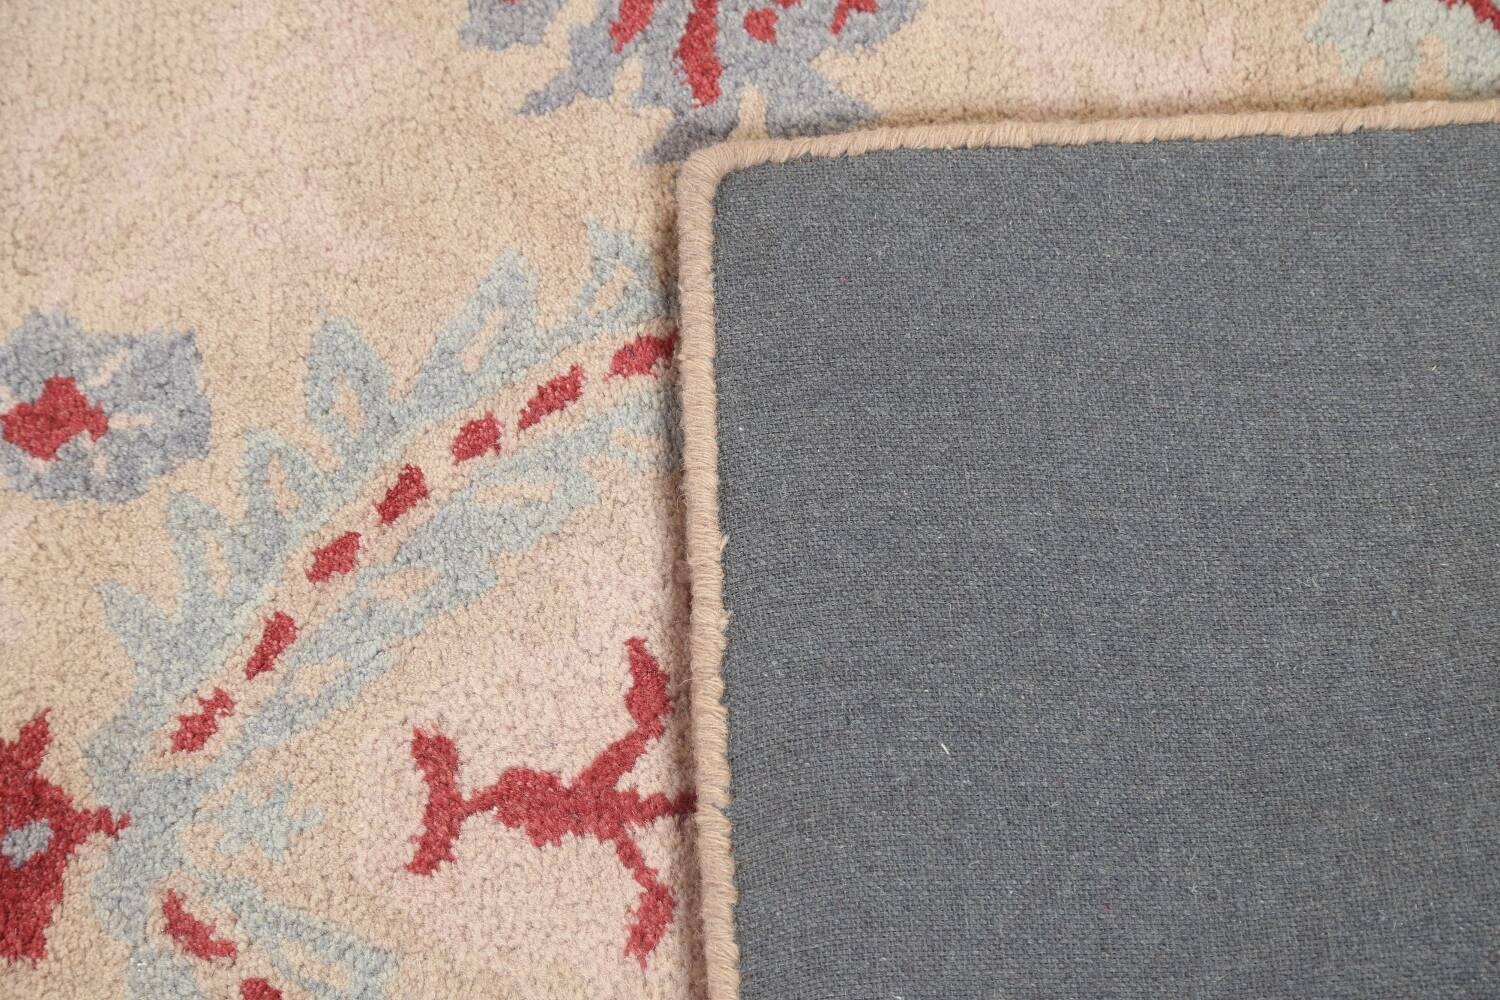 Pale Coral Hand-Tufted Floral Area Rug 6x8 image 7